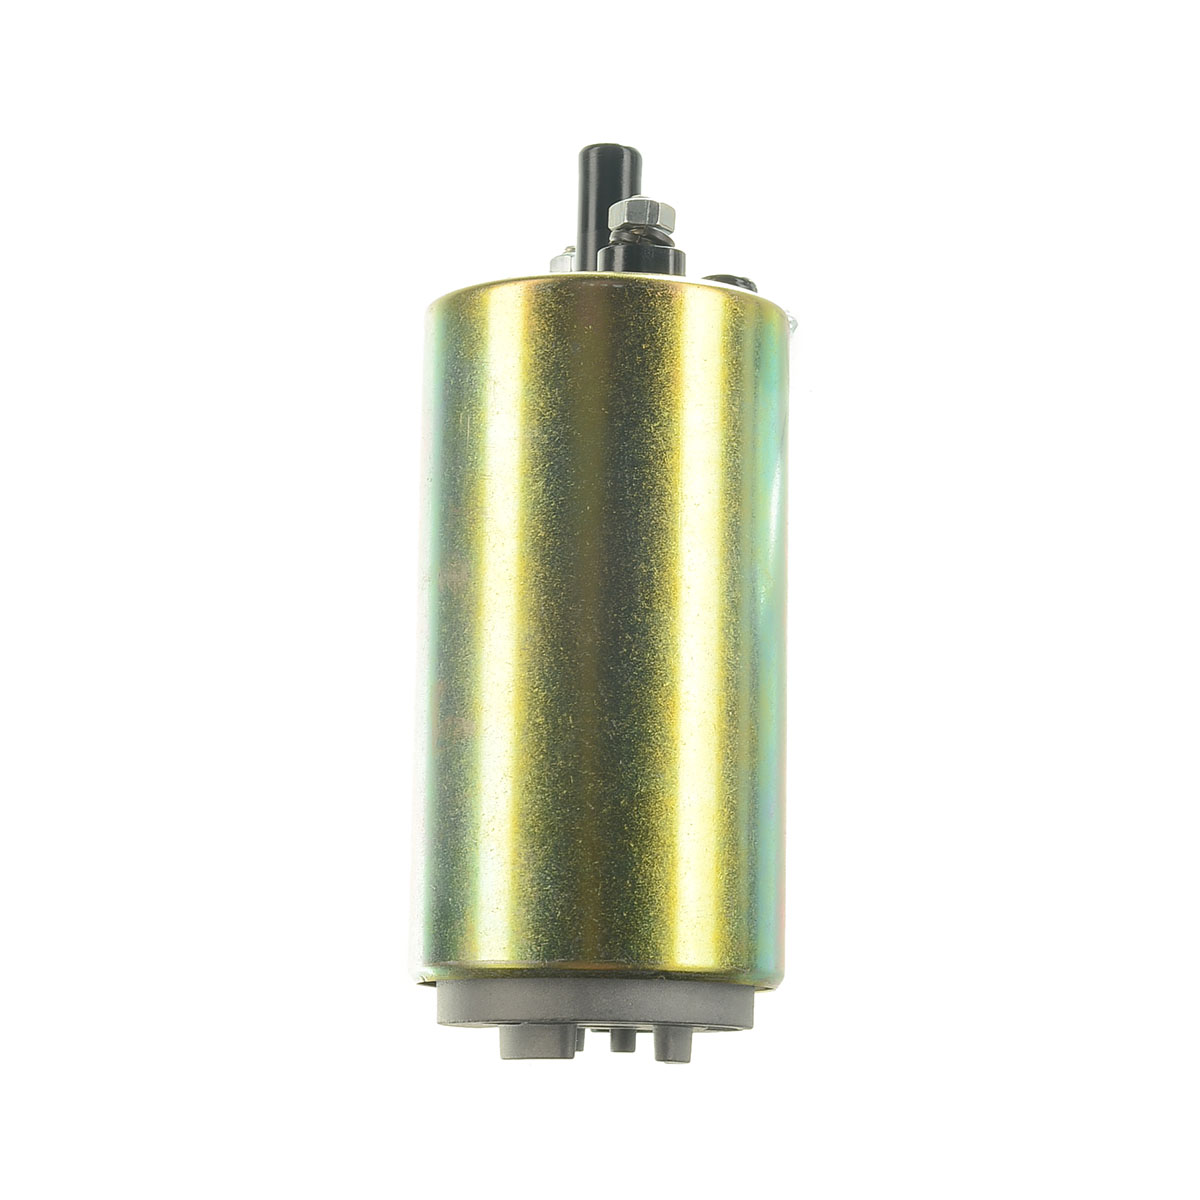 hight resolution of electric fuel pump for toyota camry sv21 i4 2 0l 1987 1988 1989 1990 1991 1992 1993 3s fe sedan wagon in fuel pumps from automobiles motorcycles on